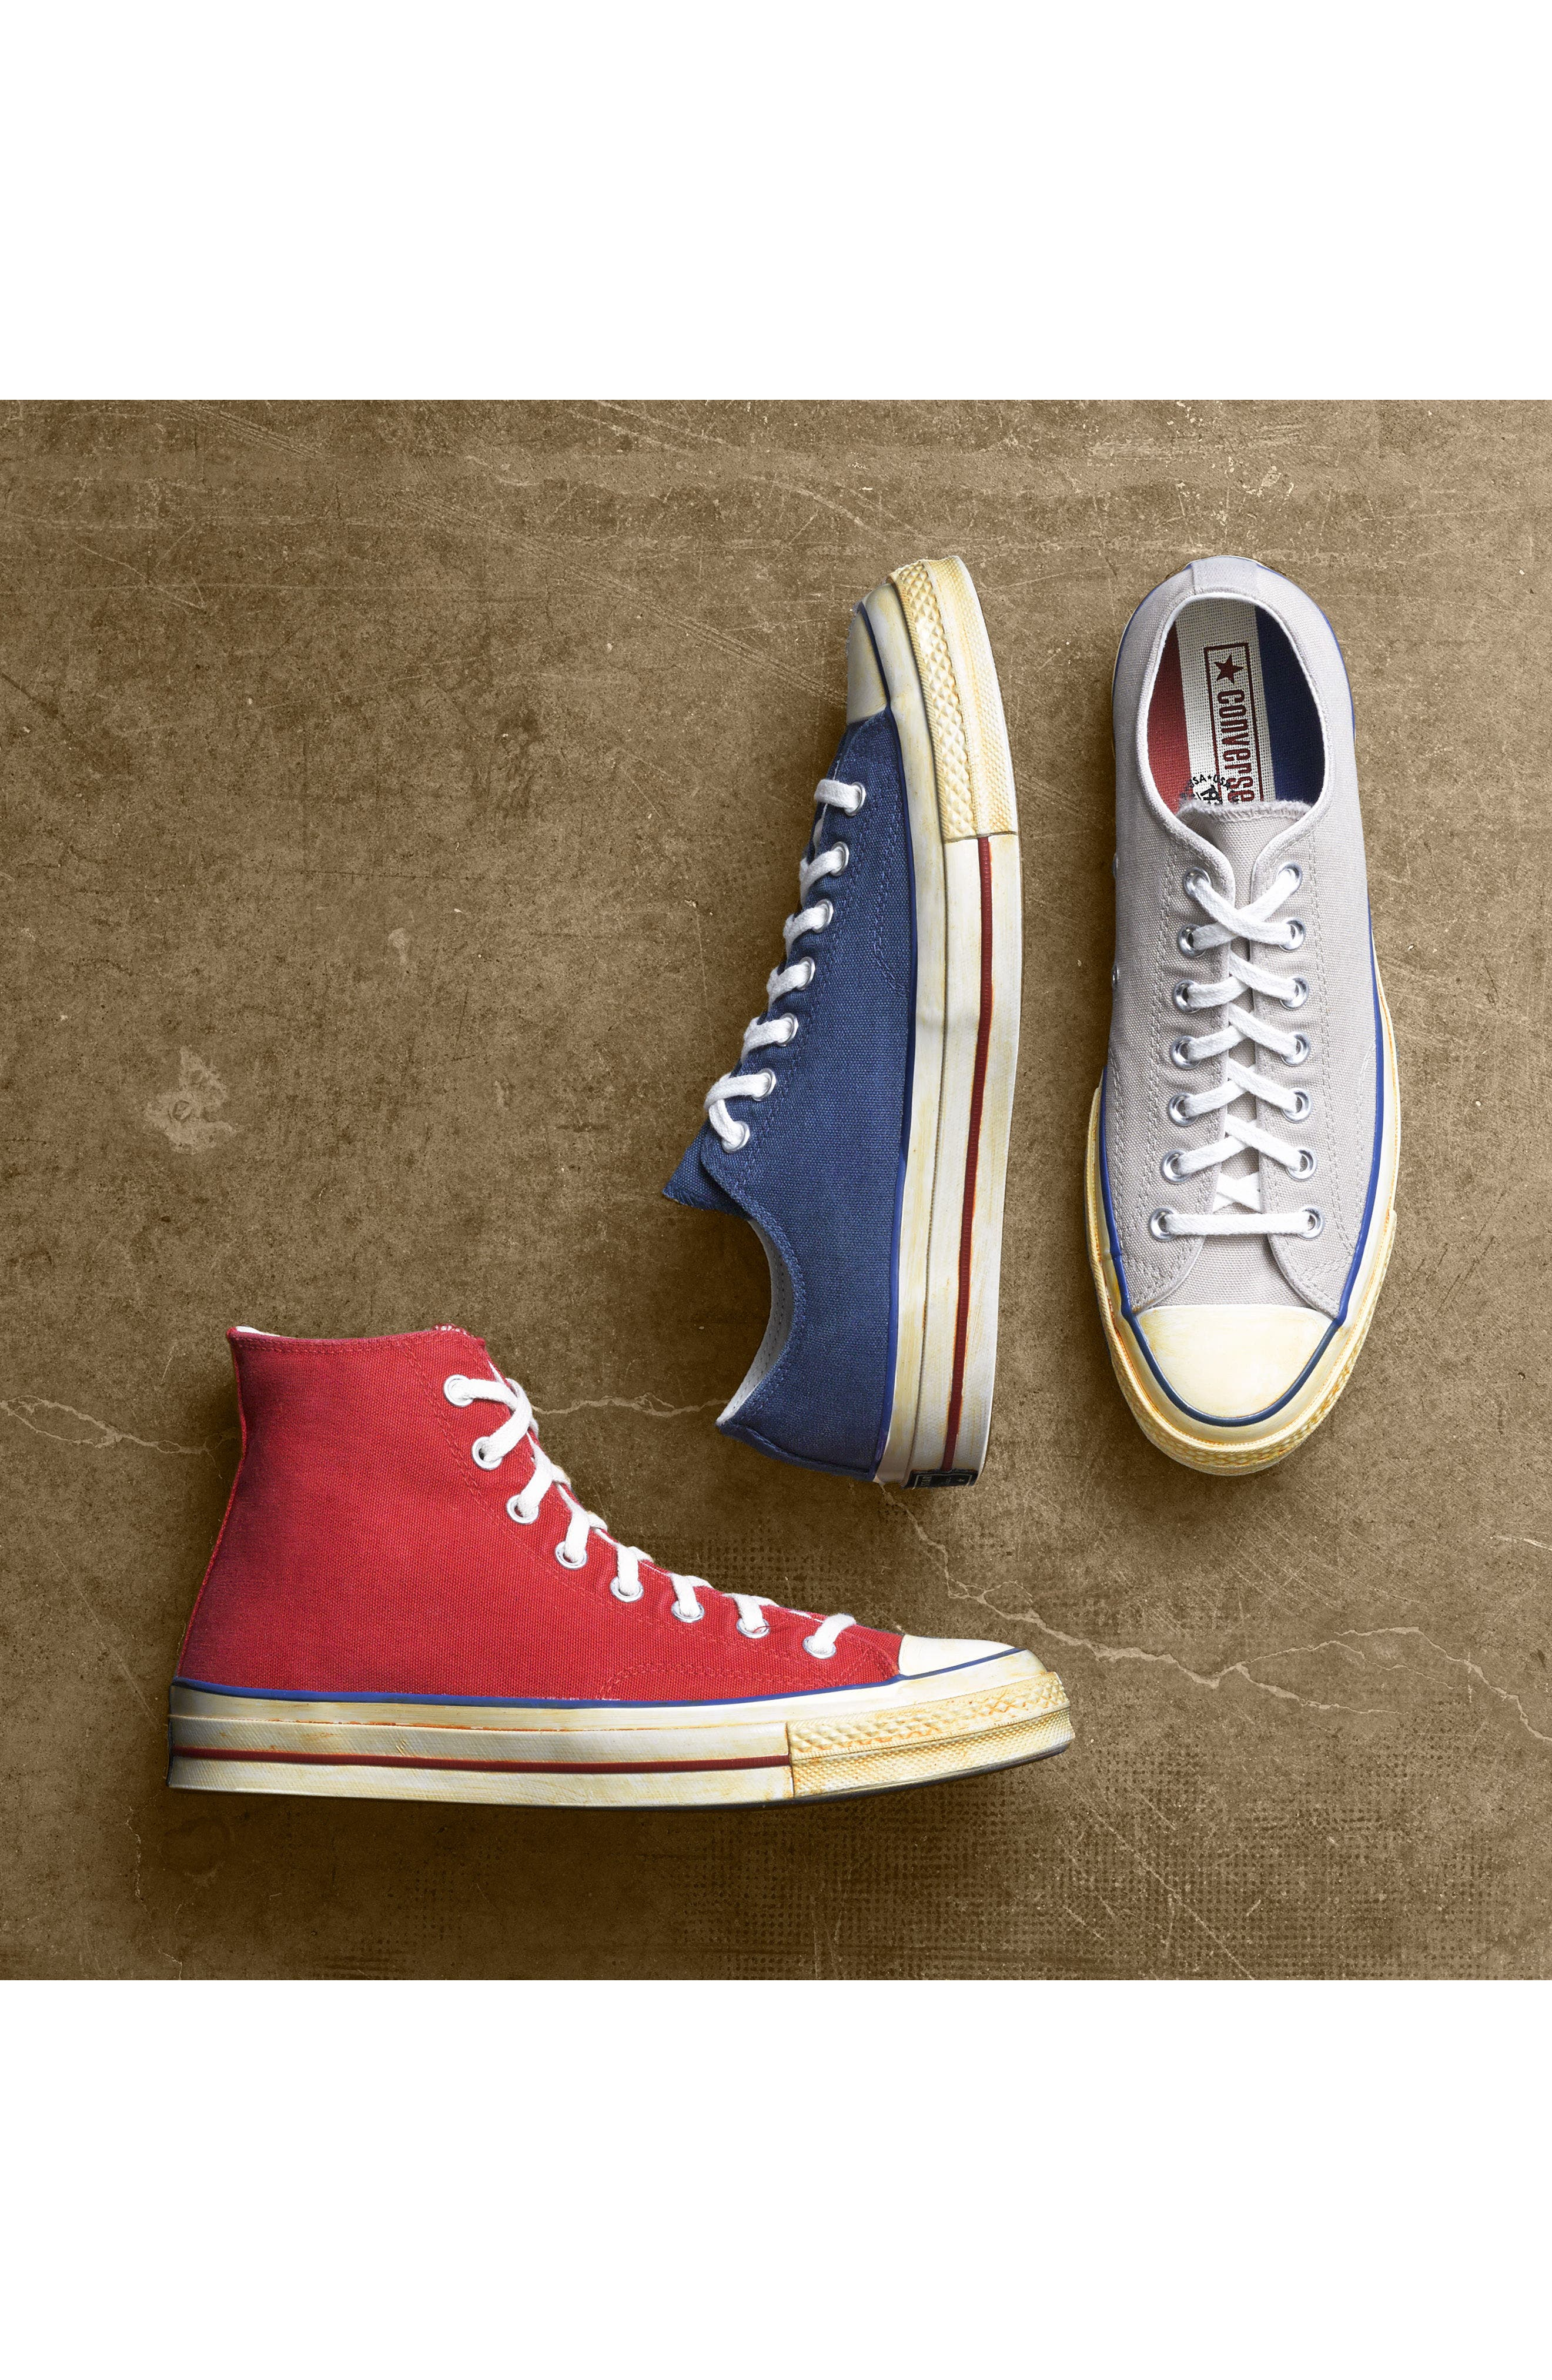 Chuck Taylor<sup>®</sup> All Star<sup>®</sup> 70 Low Top Sneaker,                             Alternate thumbnail 7, color,                             270